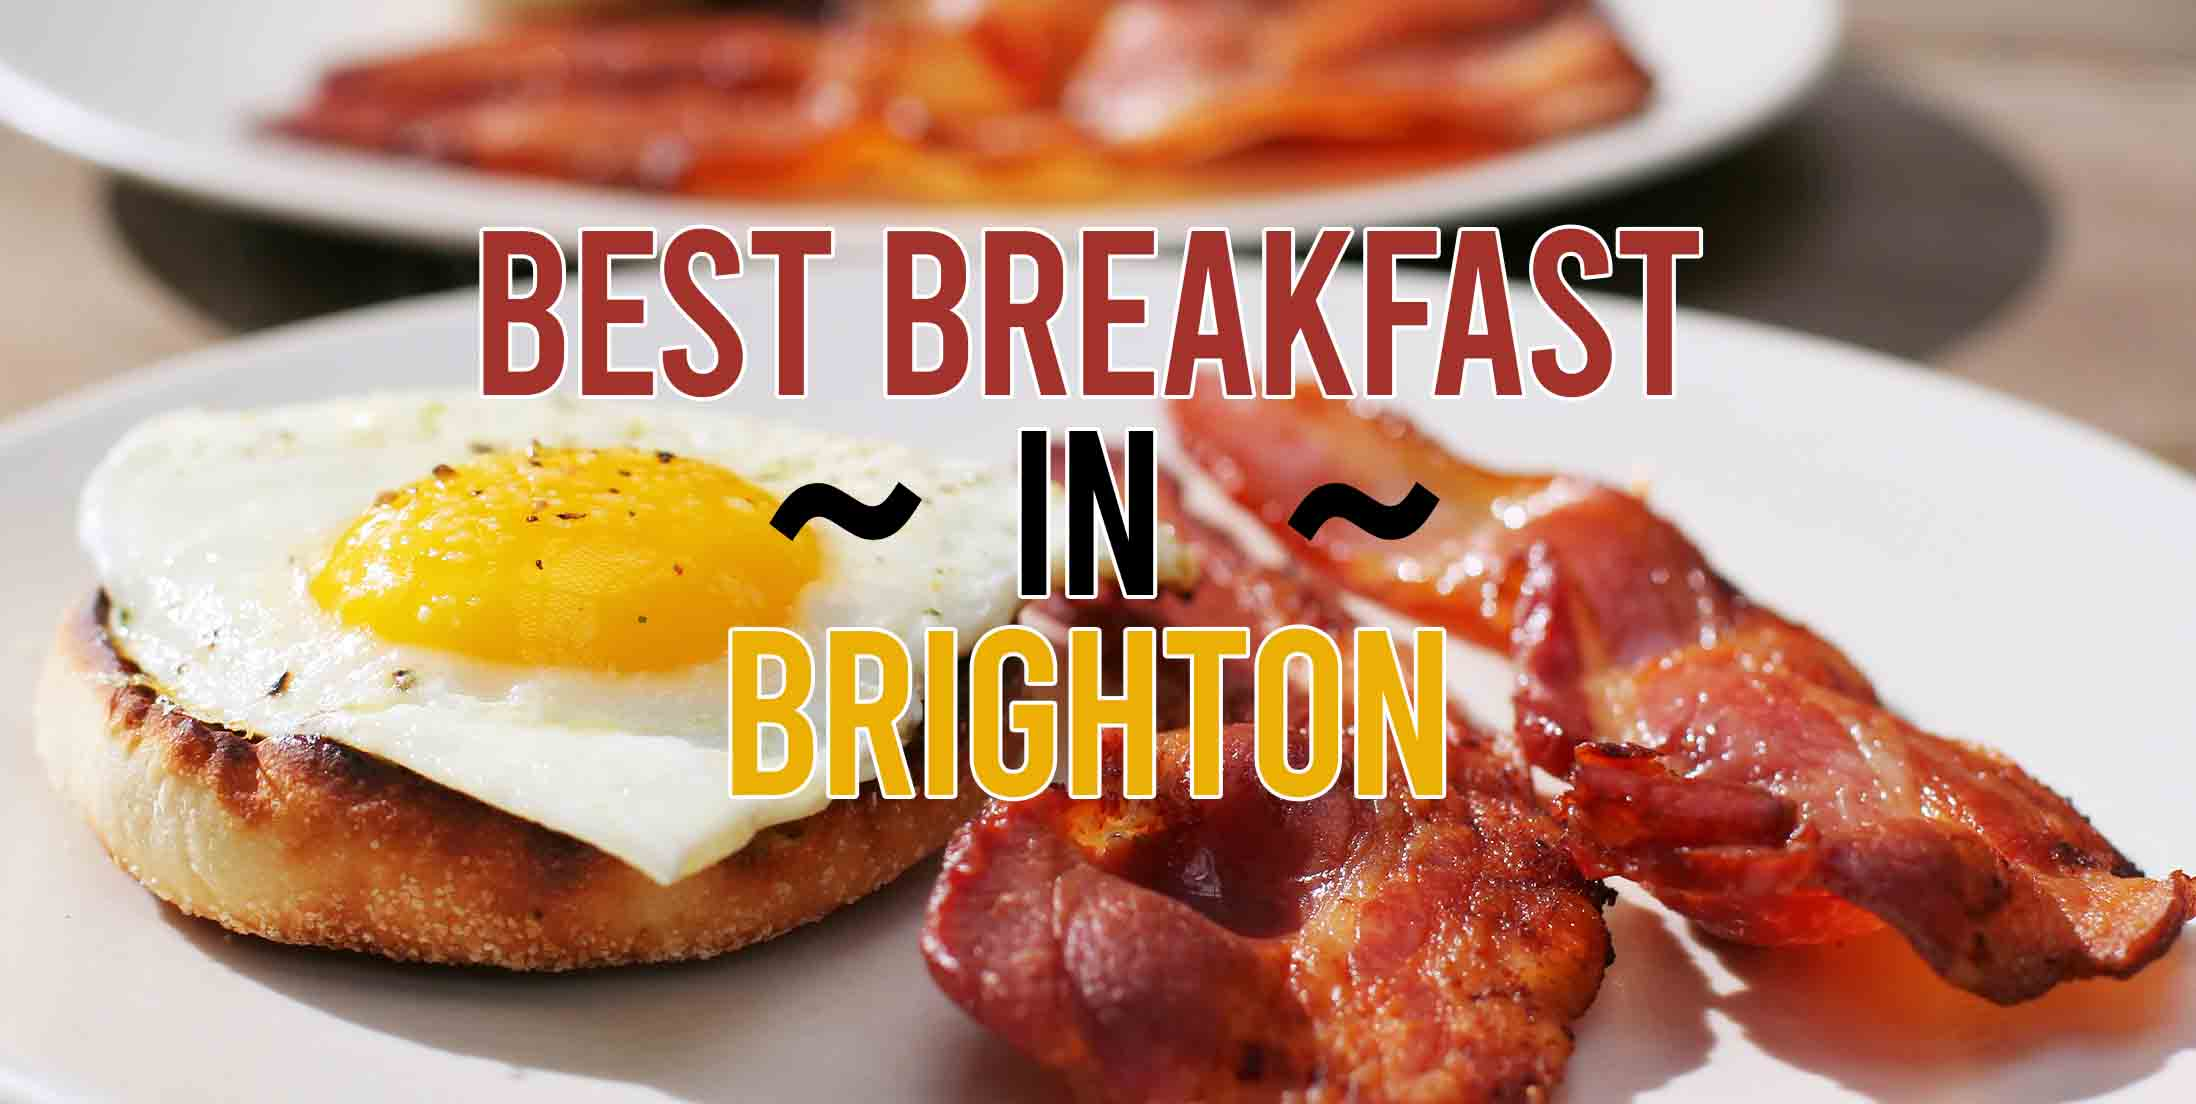 Best Breakfast in Brighton